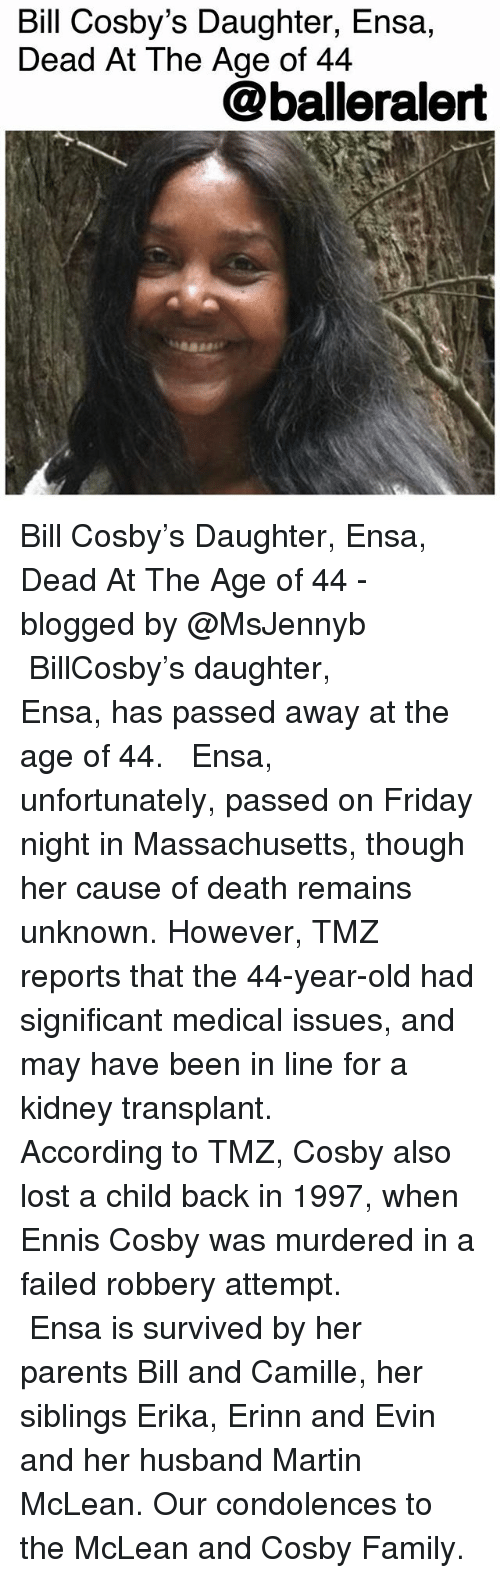 mclean: Bill Cosby's Daughter, Ensa,  Dead At The Age of 44  @balleralert Bill Cosby's Daughter, Ensa, Dead At The Age of 44 - blogged by @MsJennyb ⠀⠀⠀⠀⠀⠀⠀ ⠀⠀⠀⠀⠀⠀⠀ BillCosby's daughter, Ensa, has passed away at the age of 44. ⠀⠀⠀⠀⠀⠀⠀ ⠀⠀⠀⠀⠀⠀⠀ Ensa, unfortunately, passed on Friday night in Massachusetts, though her cause of death remains unknown. However, TMZ reports that the 44-year-old had significant medical issues, and may have been in line for a kidney transplant. ⠀⠀⠀⠀⠀⠀⠀ ⠀⠀⠀⠀⠀⠀⠀ According to TMZ, Cosby also lost a child back in 1997, when Ennis Cosby was murdered in a failed robbery attempt. ⠀⠀⠀⠀⠀⠀⠀ ⠀⠀⠀⠀⠀⠀⠀ Ensa is survived by her parents Bill and Camille, her siblings Erika, Erinn and Evin and her husband Martin McLean. Our condolences to the McLean and Cosby Family.